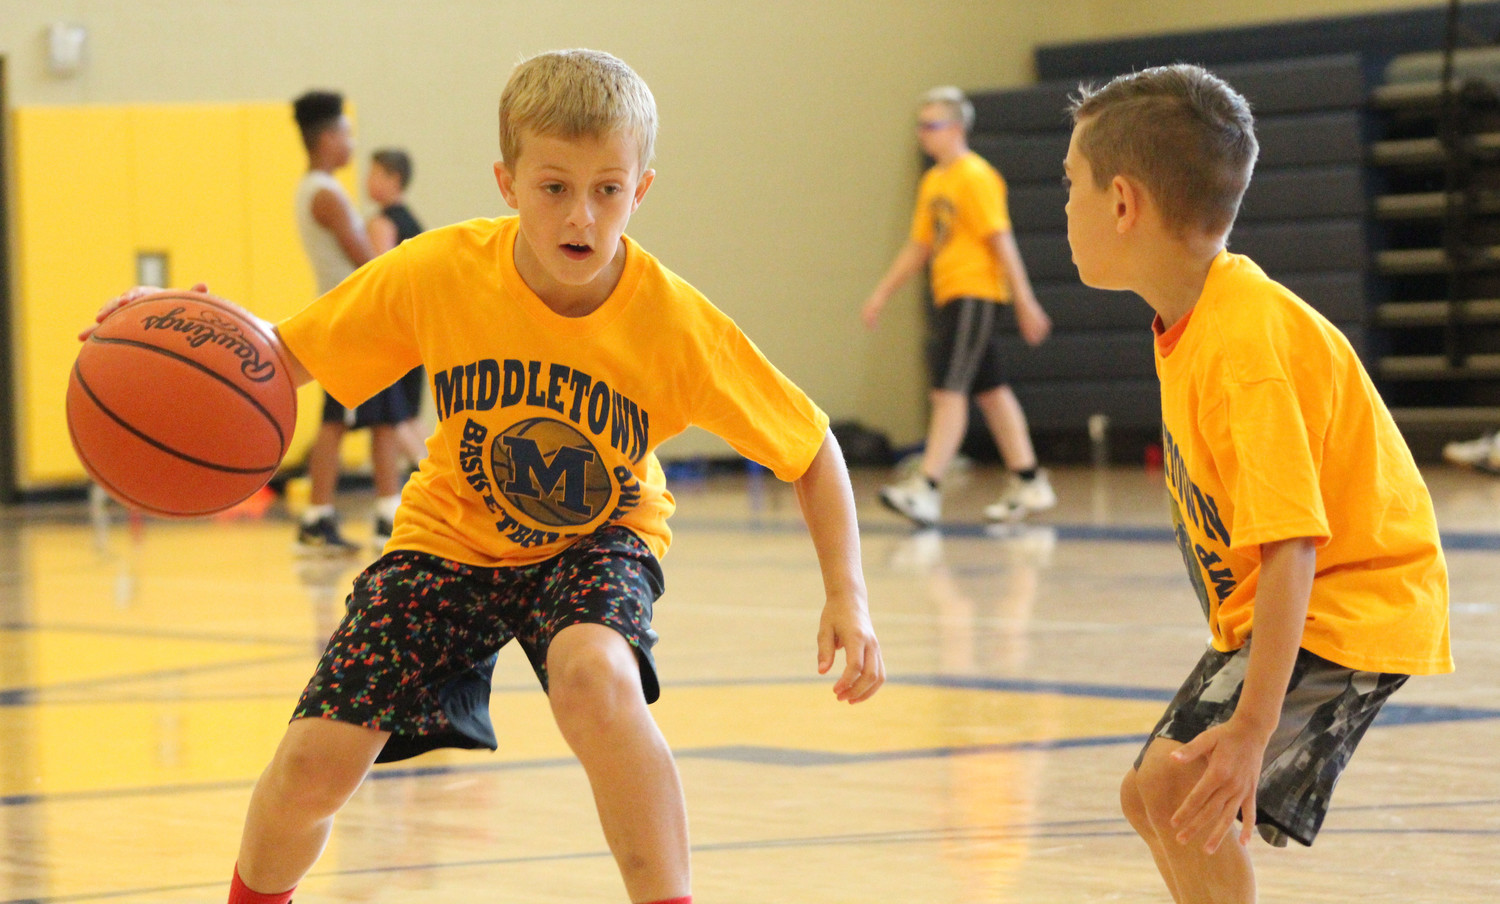 Lucas Myers faces off against Bryce DeFilippo during basketball camp on July 12.